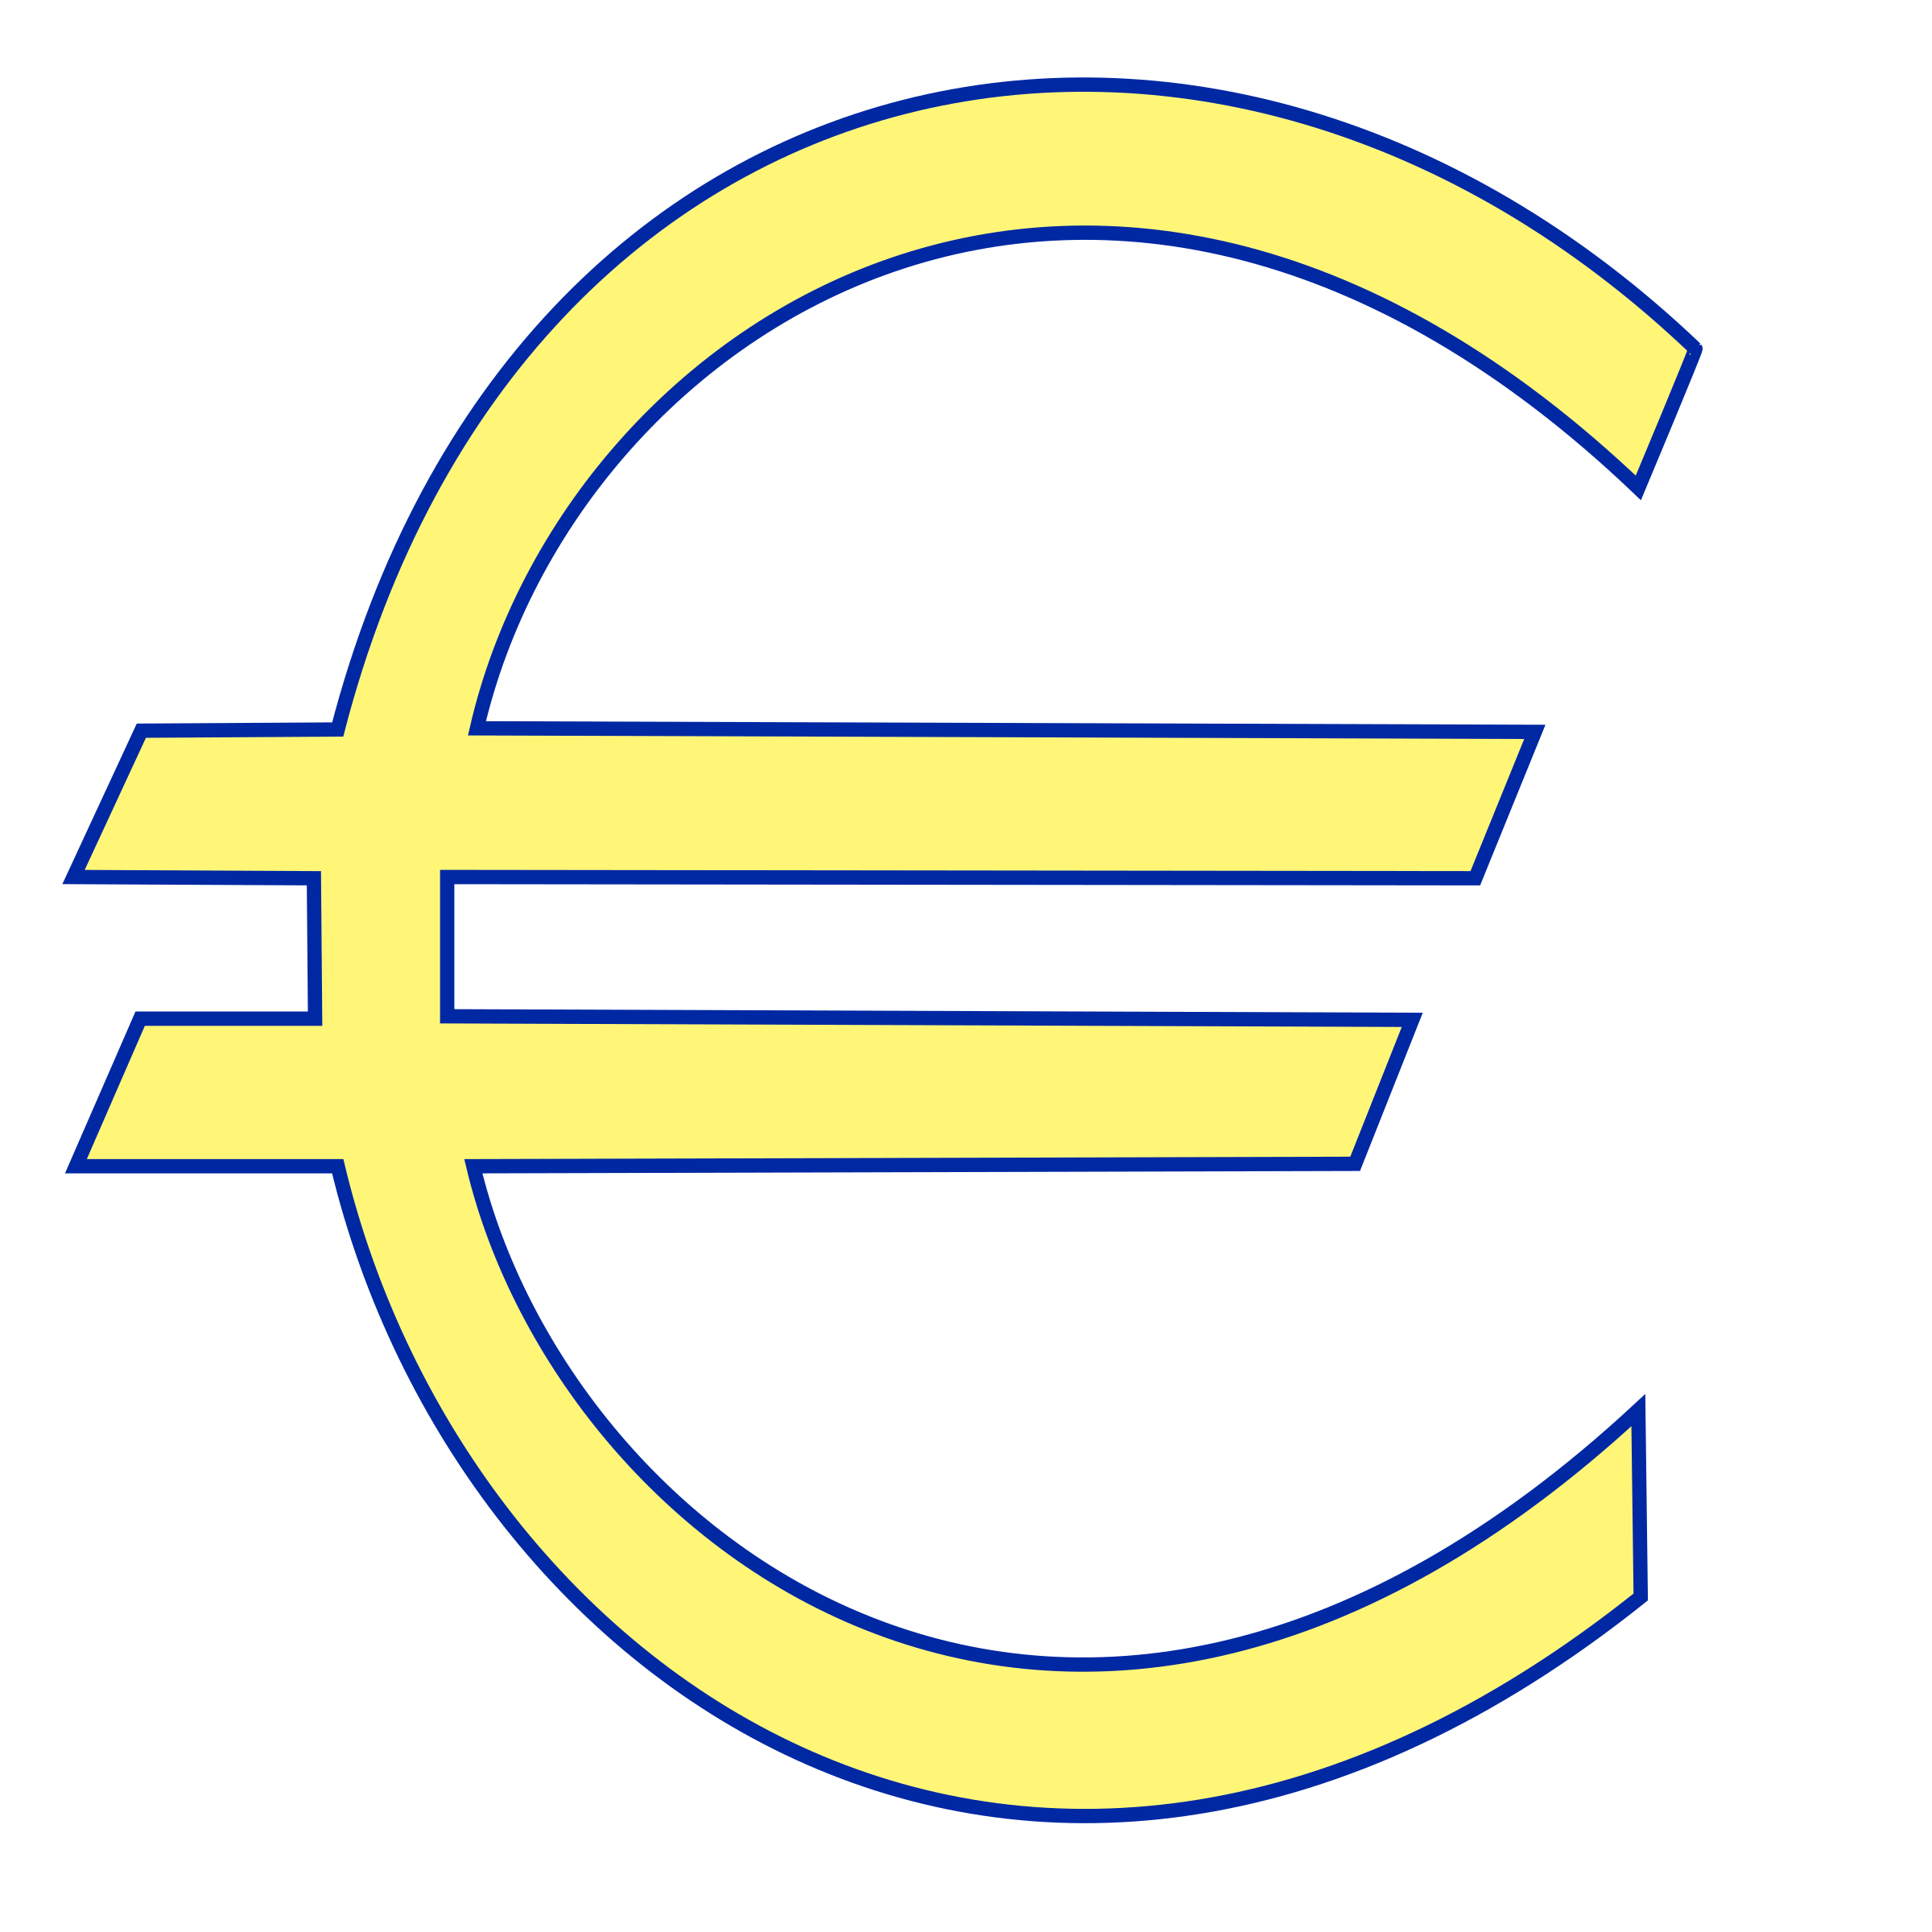 Money euro symbol by Archie